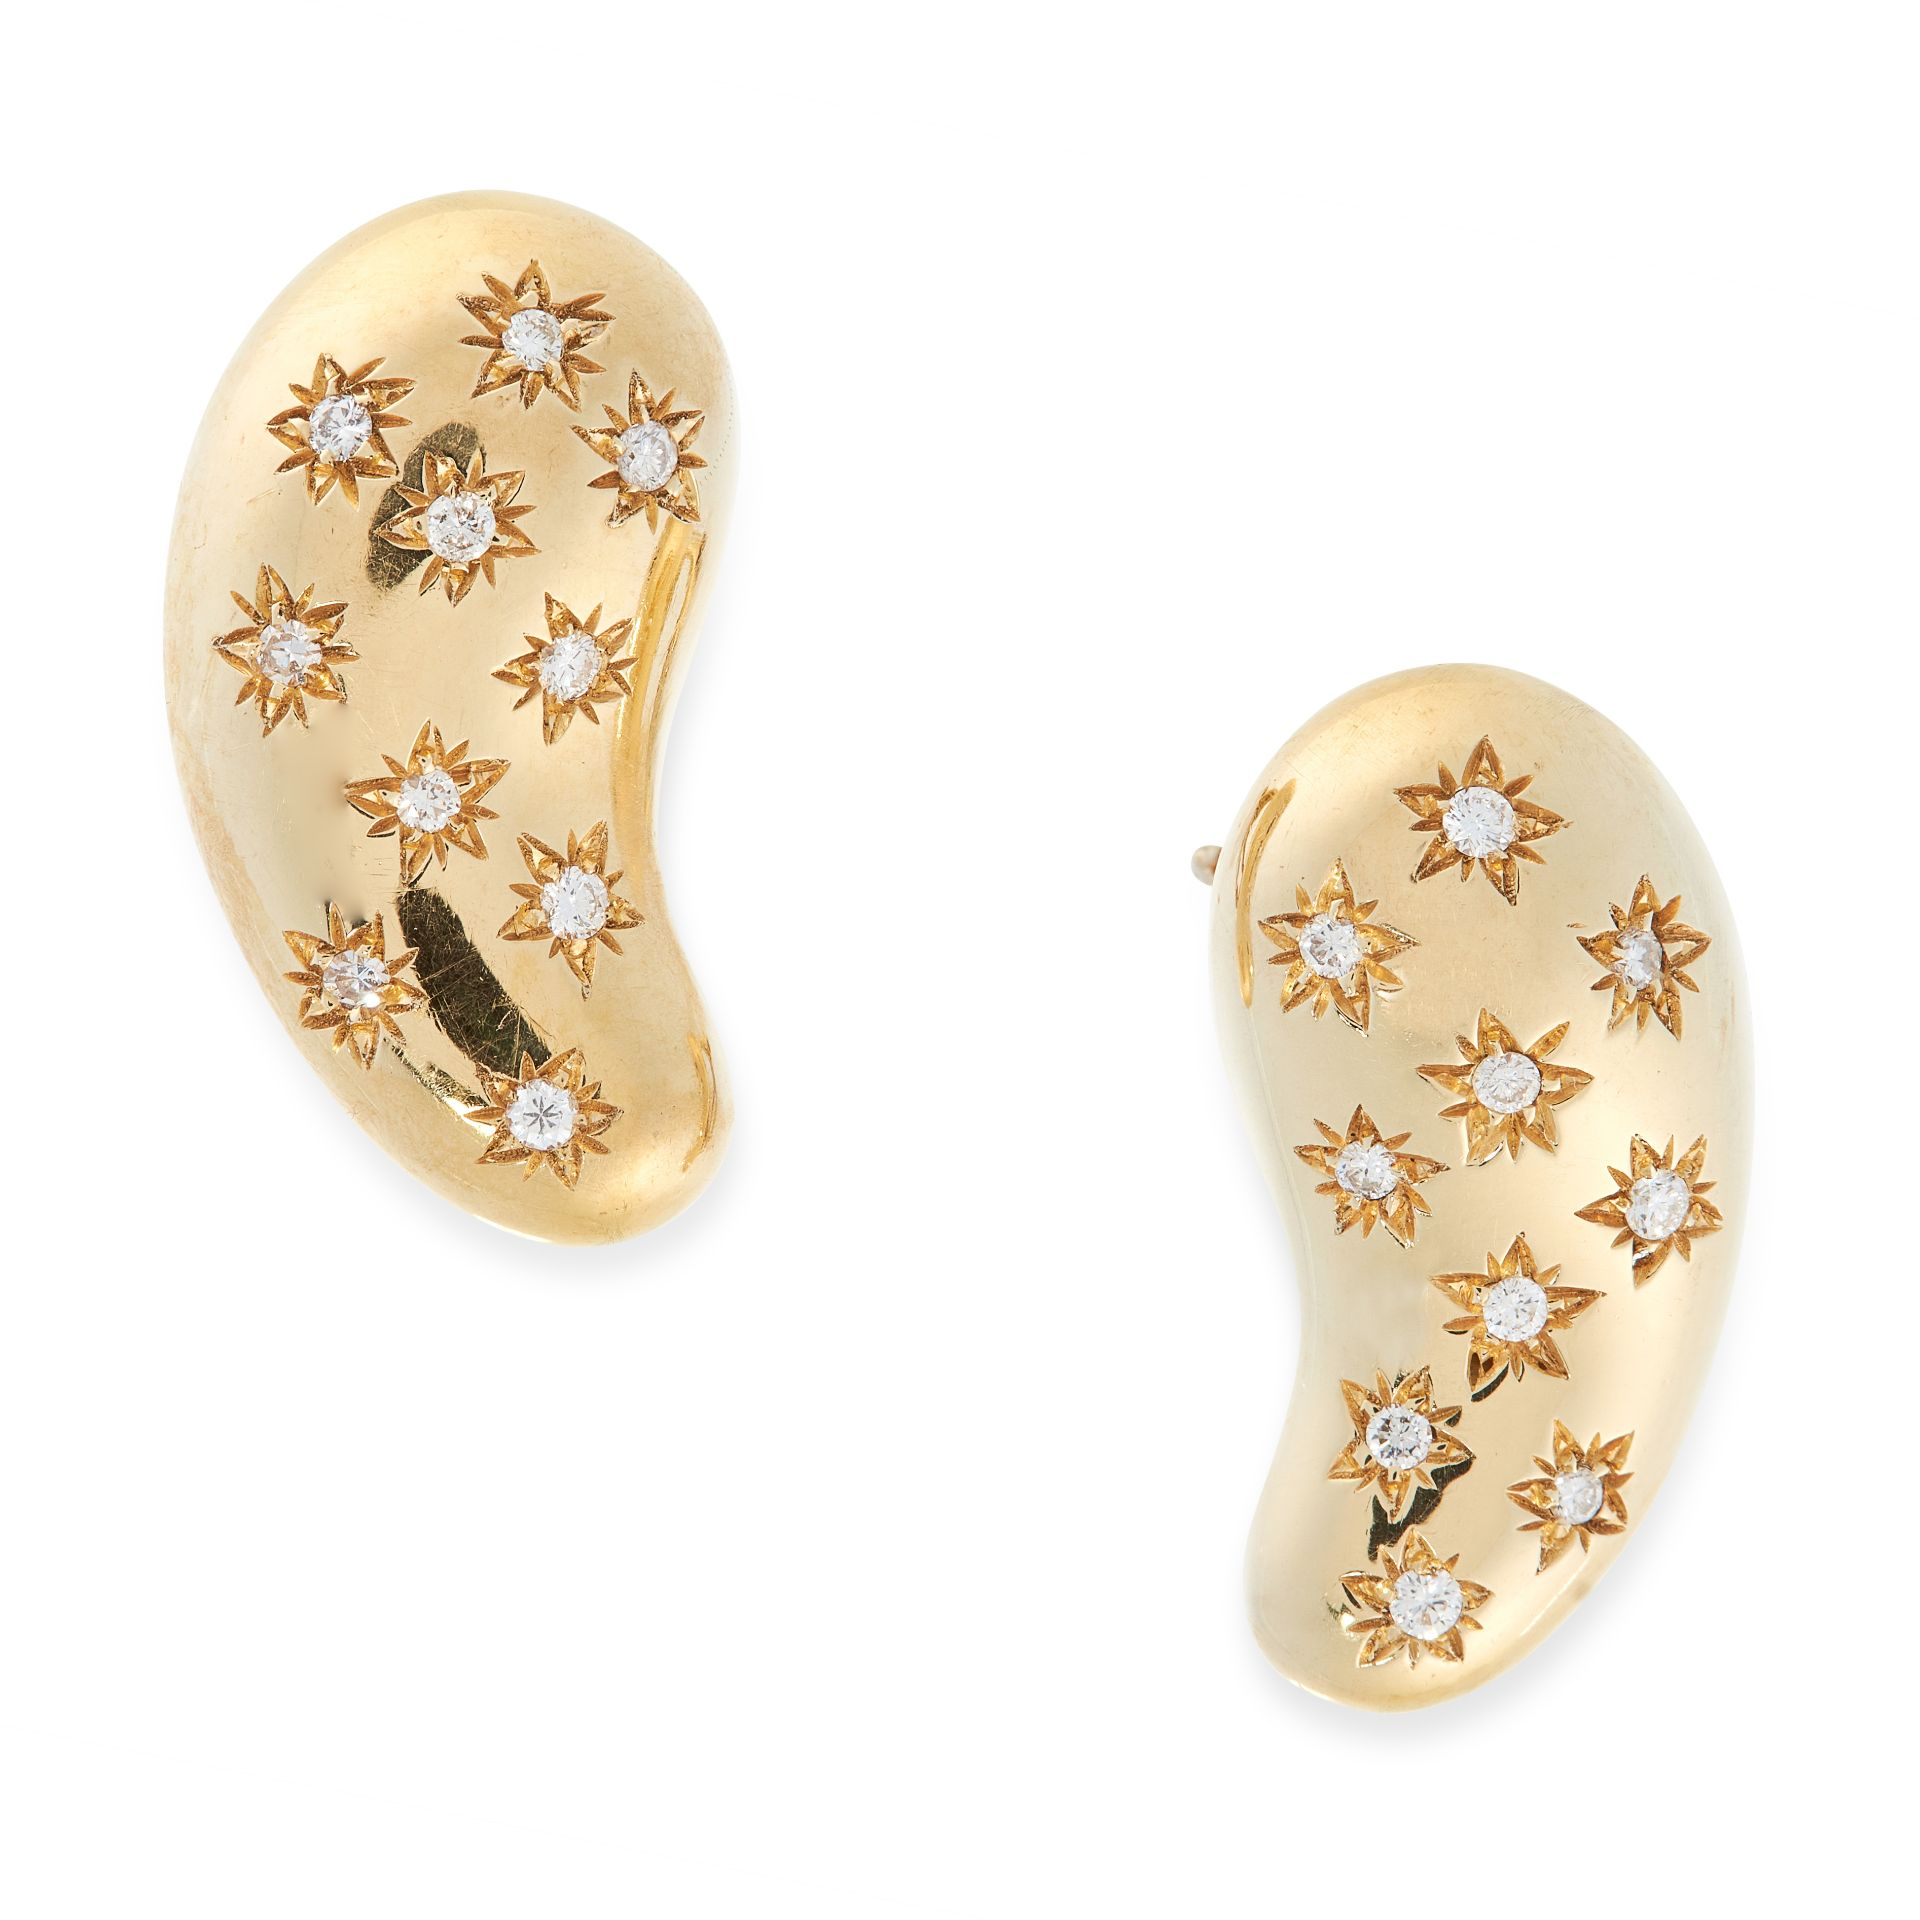 A PAIR OF DIAMOND BEAN CLIP EARRINGS, ELSA PERETTI FOR TIFFANY & CO in 18ct yellow gold, designed as